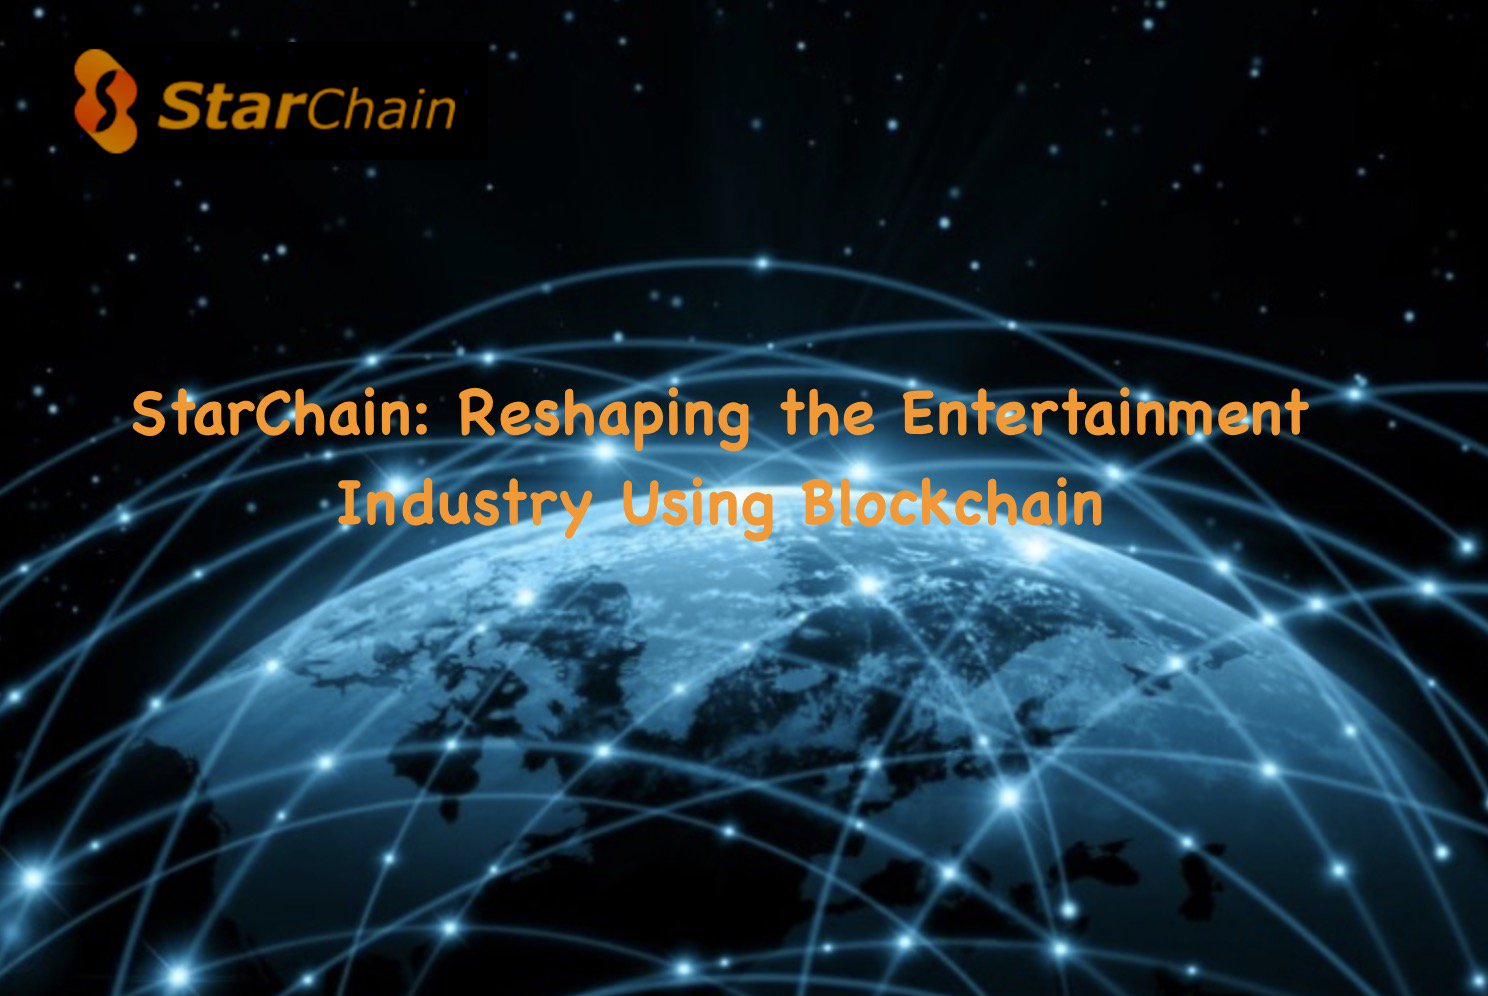 PR: StarChain – Reshaping the Entertainment Industry Using Blockchain